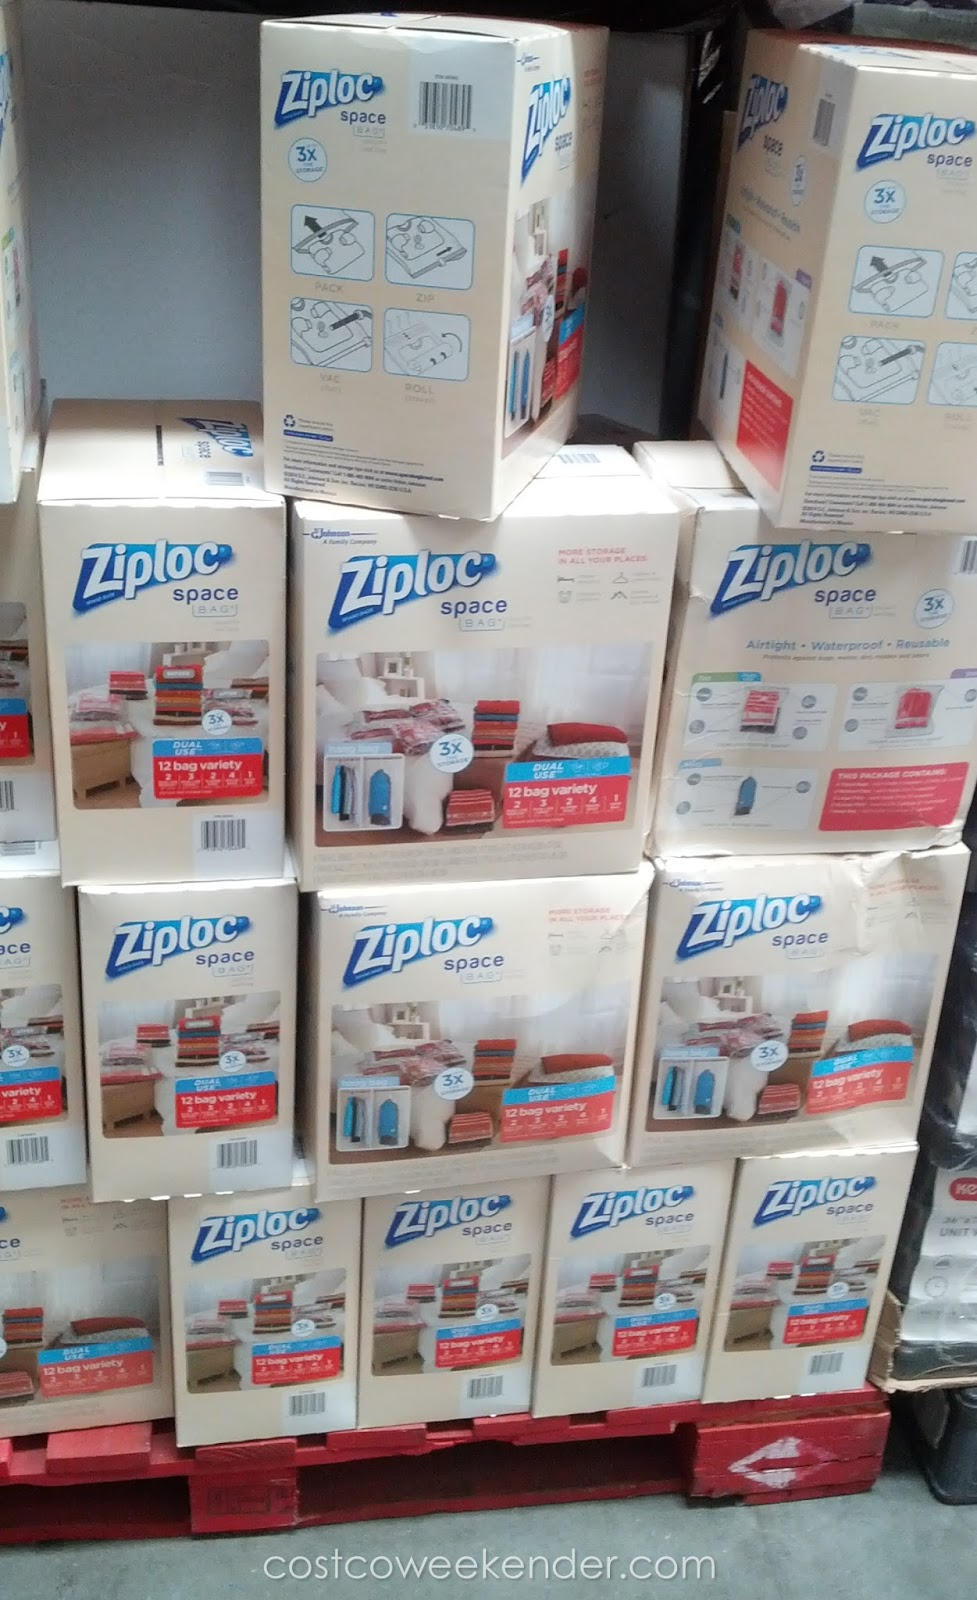 Buy Ziploc Vacuum Seal Space Bag (15 ct) from Costco online and have it delivered to your door in 1 hour. Your first delivery is free. Try it today! See terms. Buy Ziploc Vacuum Seal Space Bag (15 ct) from Costco online and have it delivered to your door in 1 hour. Brand: Ziploc.